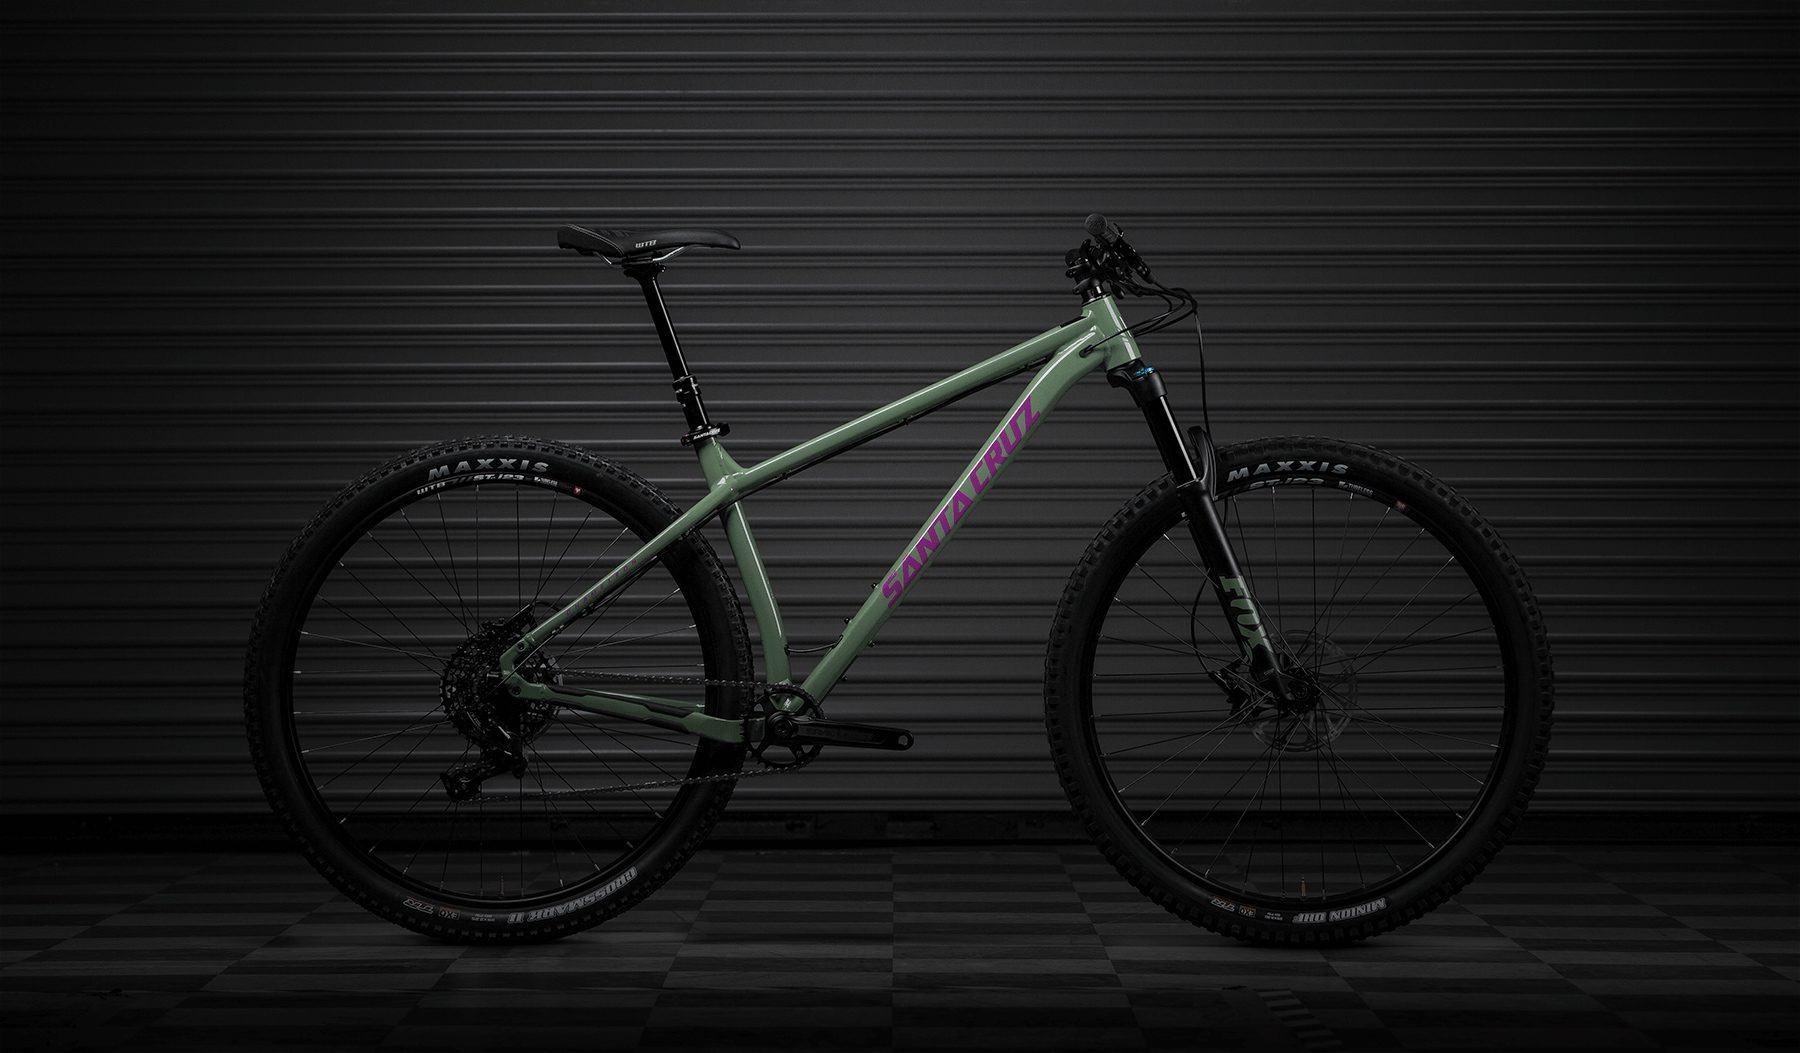 2018 Santa Cruz Chameleon Hardtail Cross Country Mountain Bike